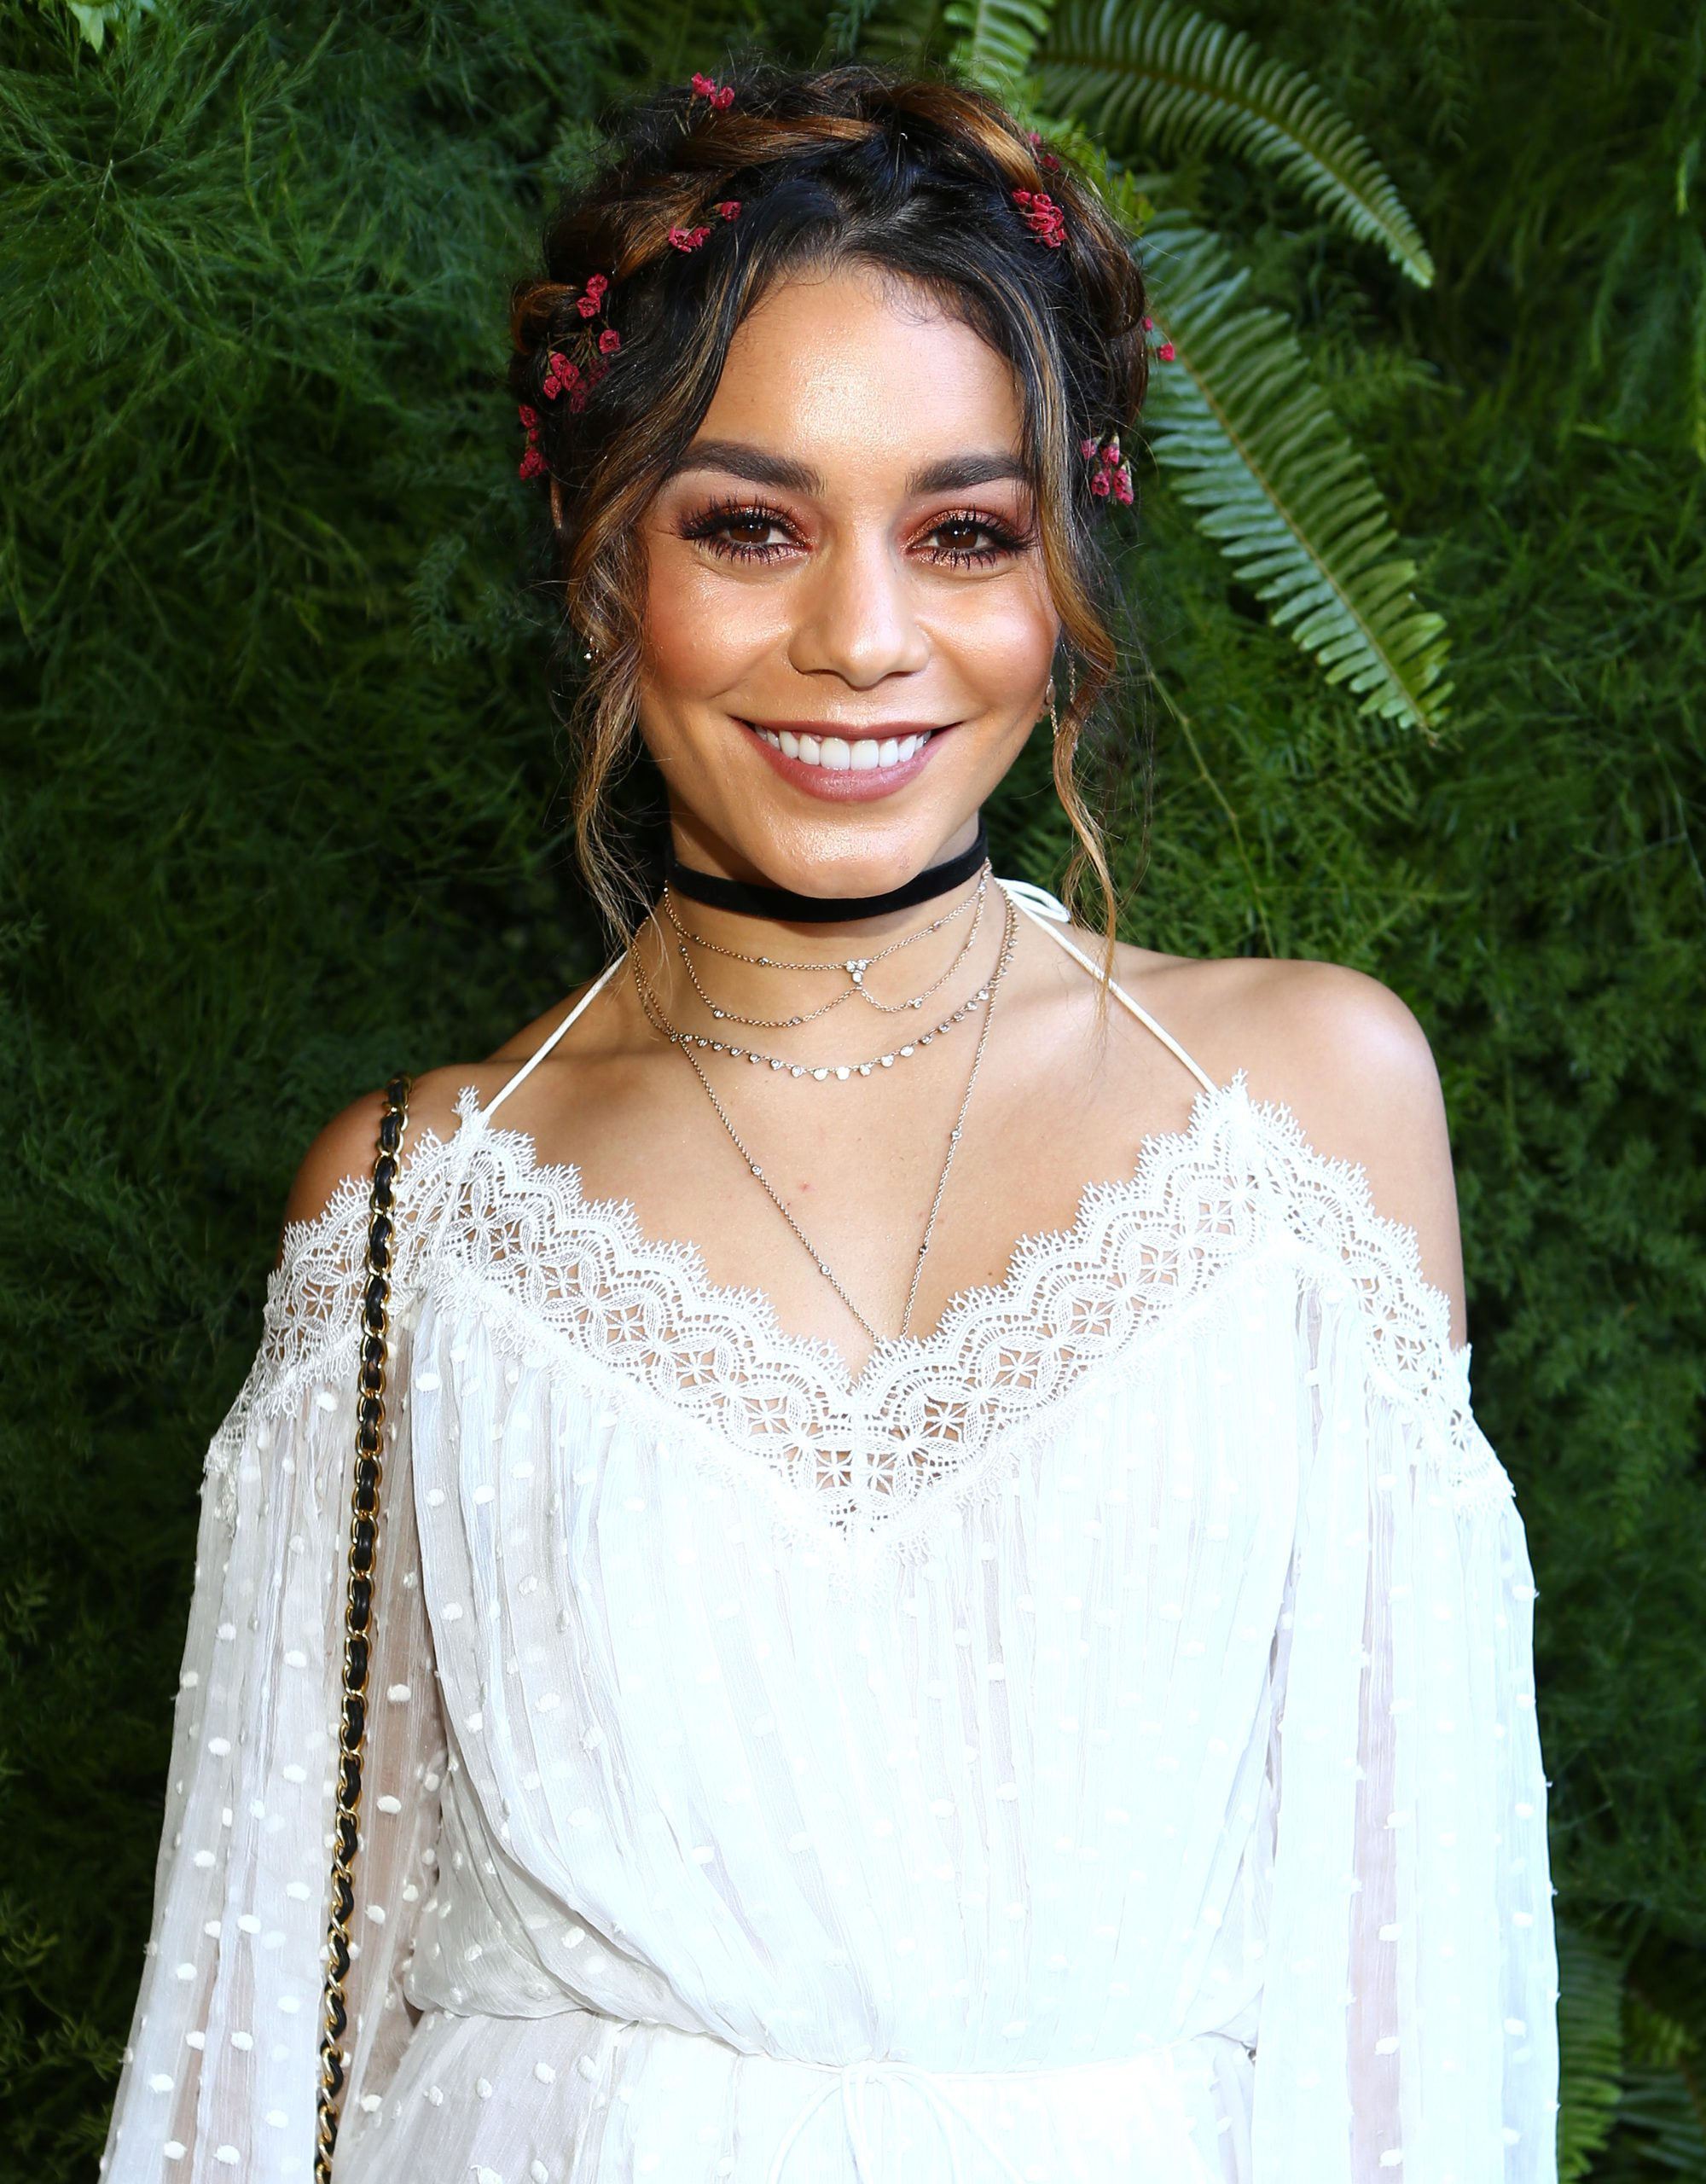 party braids inspiration: shot of vanessa hudgens with floral milkmaid braid wearing white and smiling